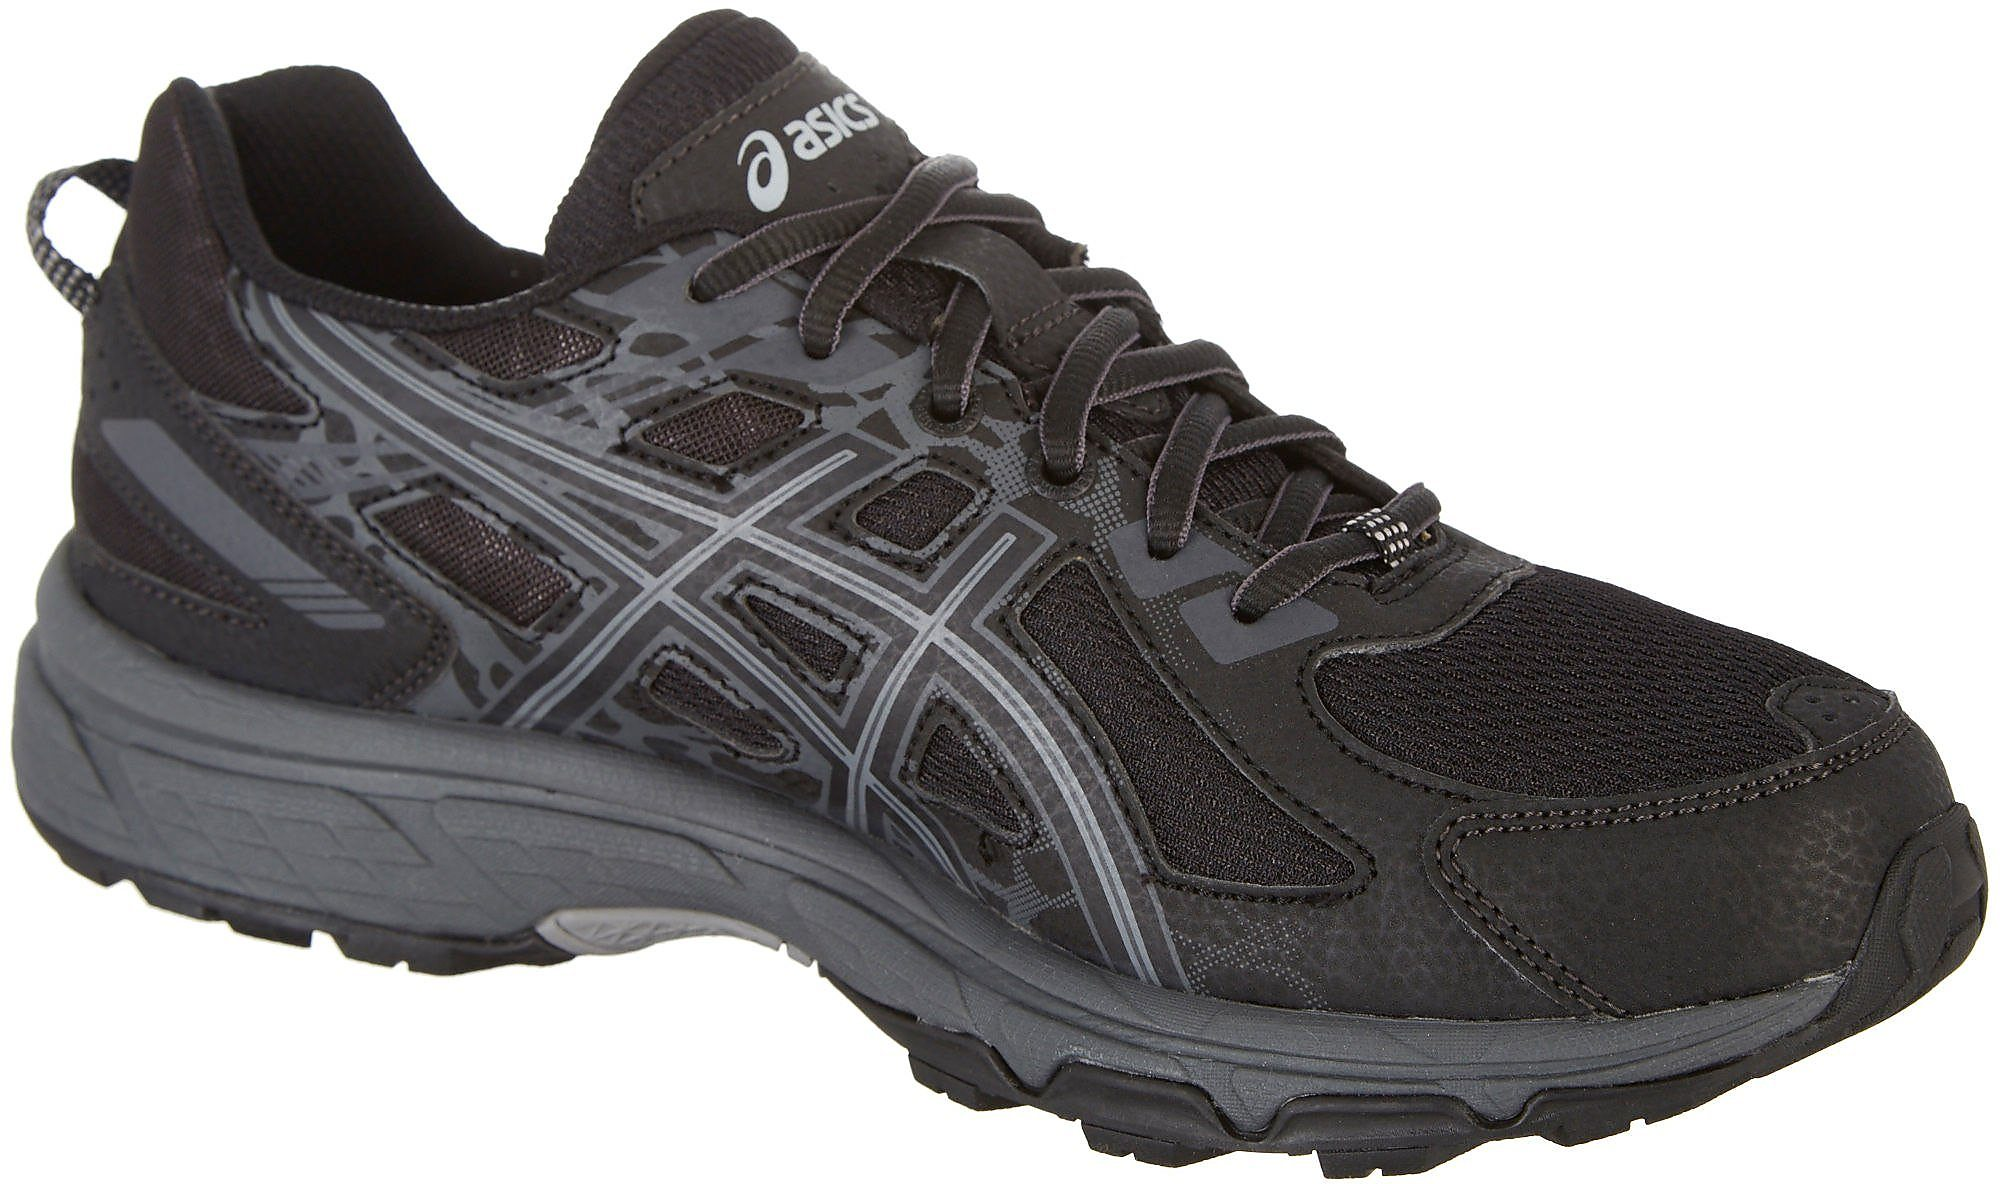 e6764882126c ASICS Men39s GELVenture 6 MX Running Shoes 1011A591 Cool